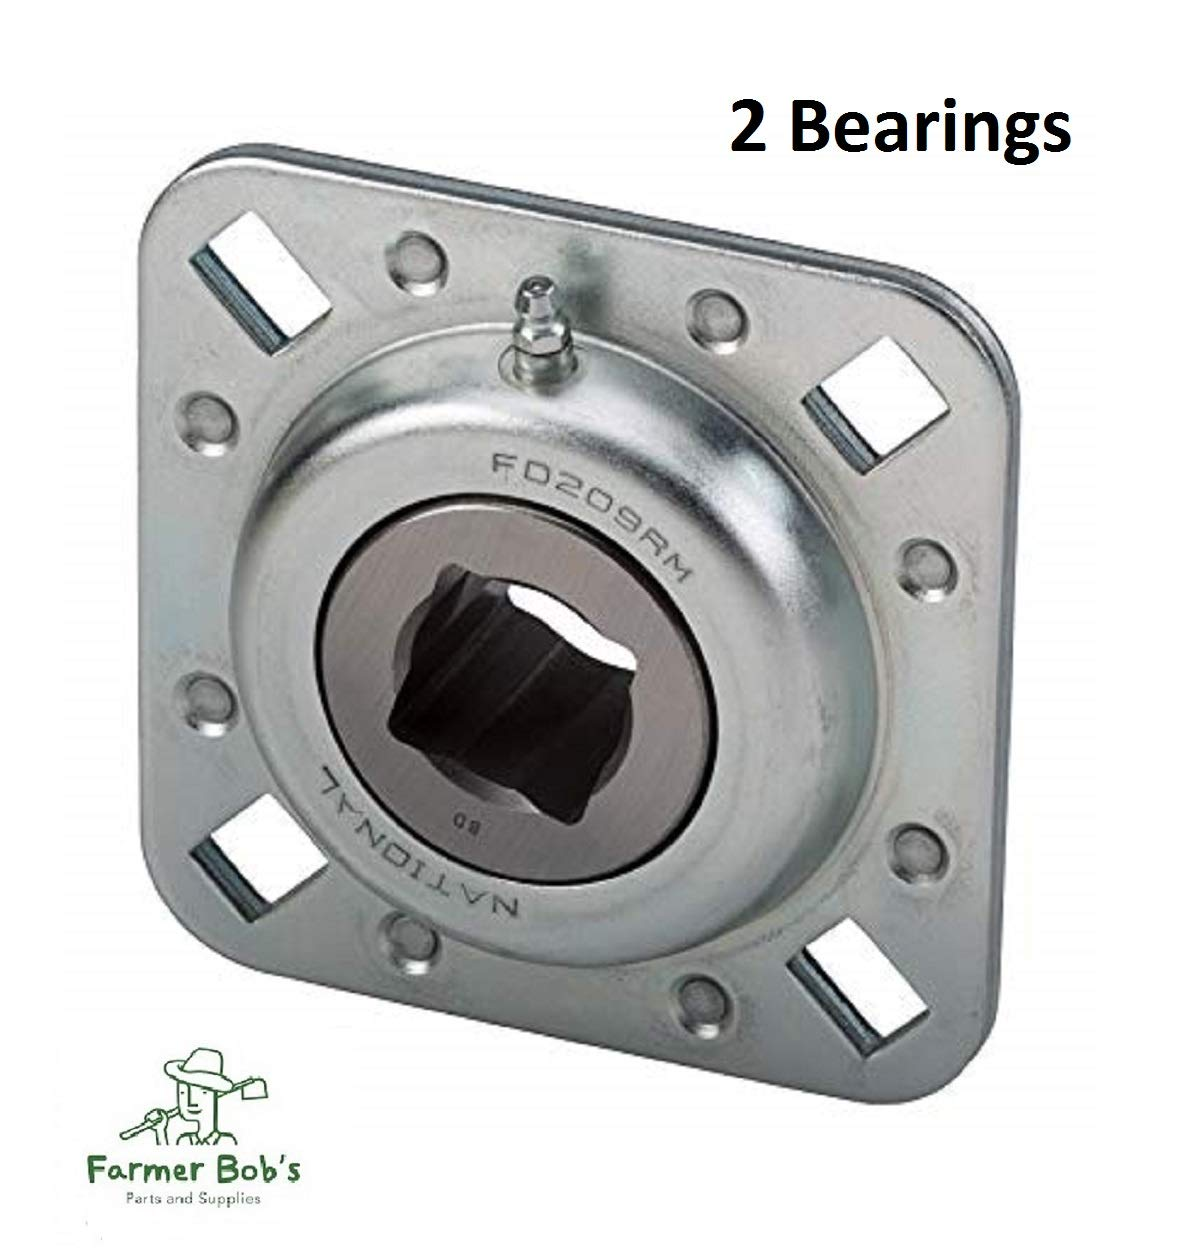 2 of Disc Harrow Bearings 1-1//8 Sq Bore 4-0.531 x 0.687 Bolt Holes /& 5 OAL Farmer Bobs Parts FD209RM